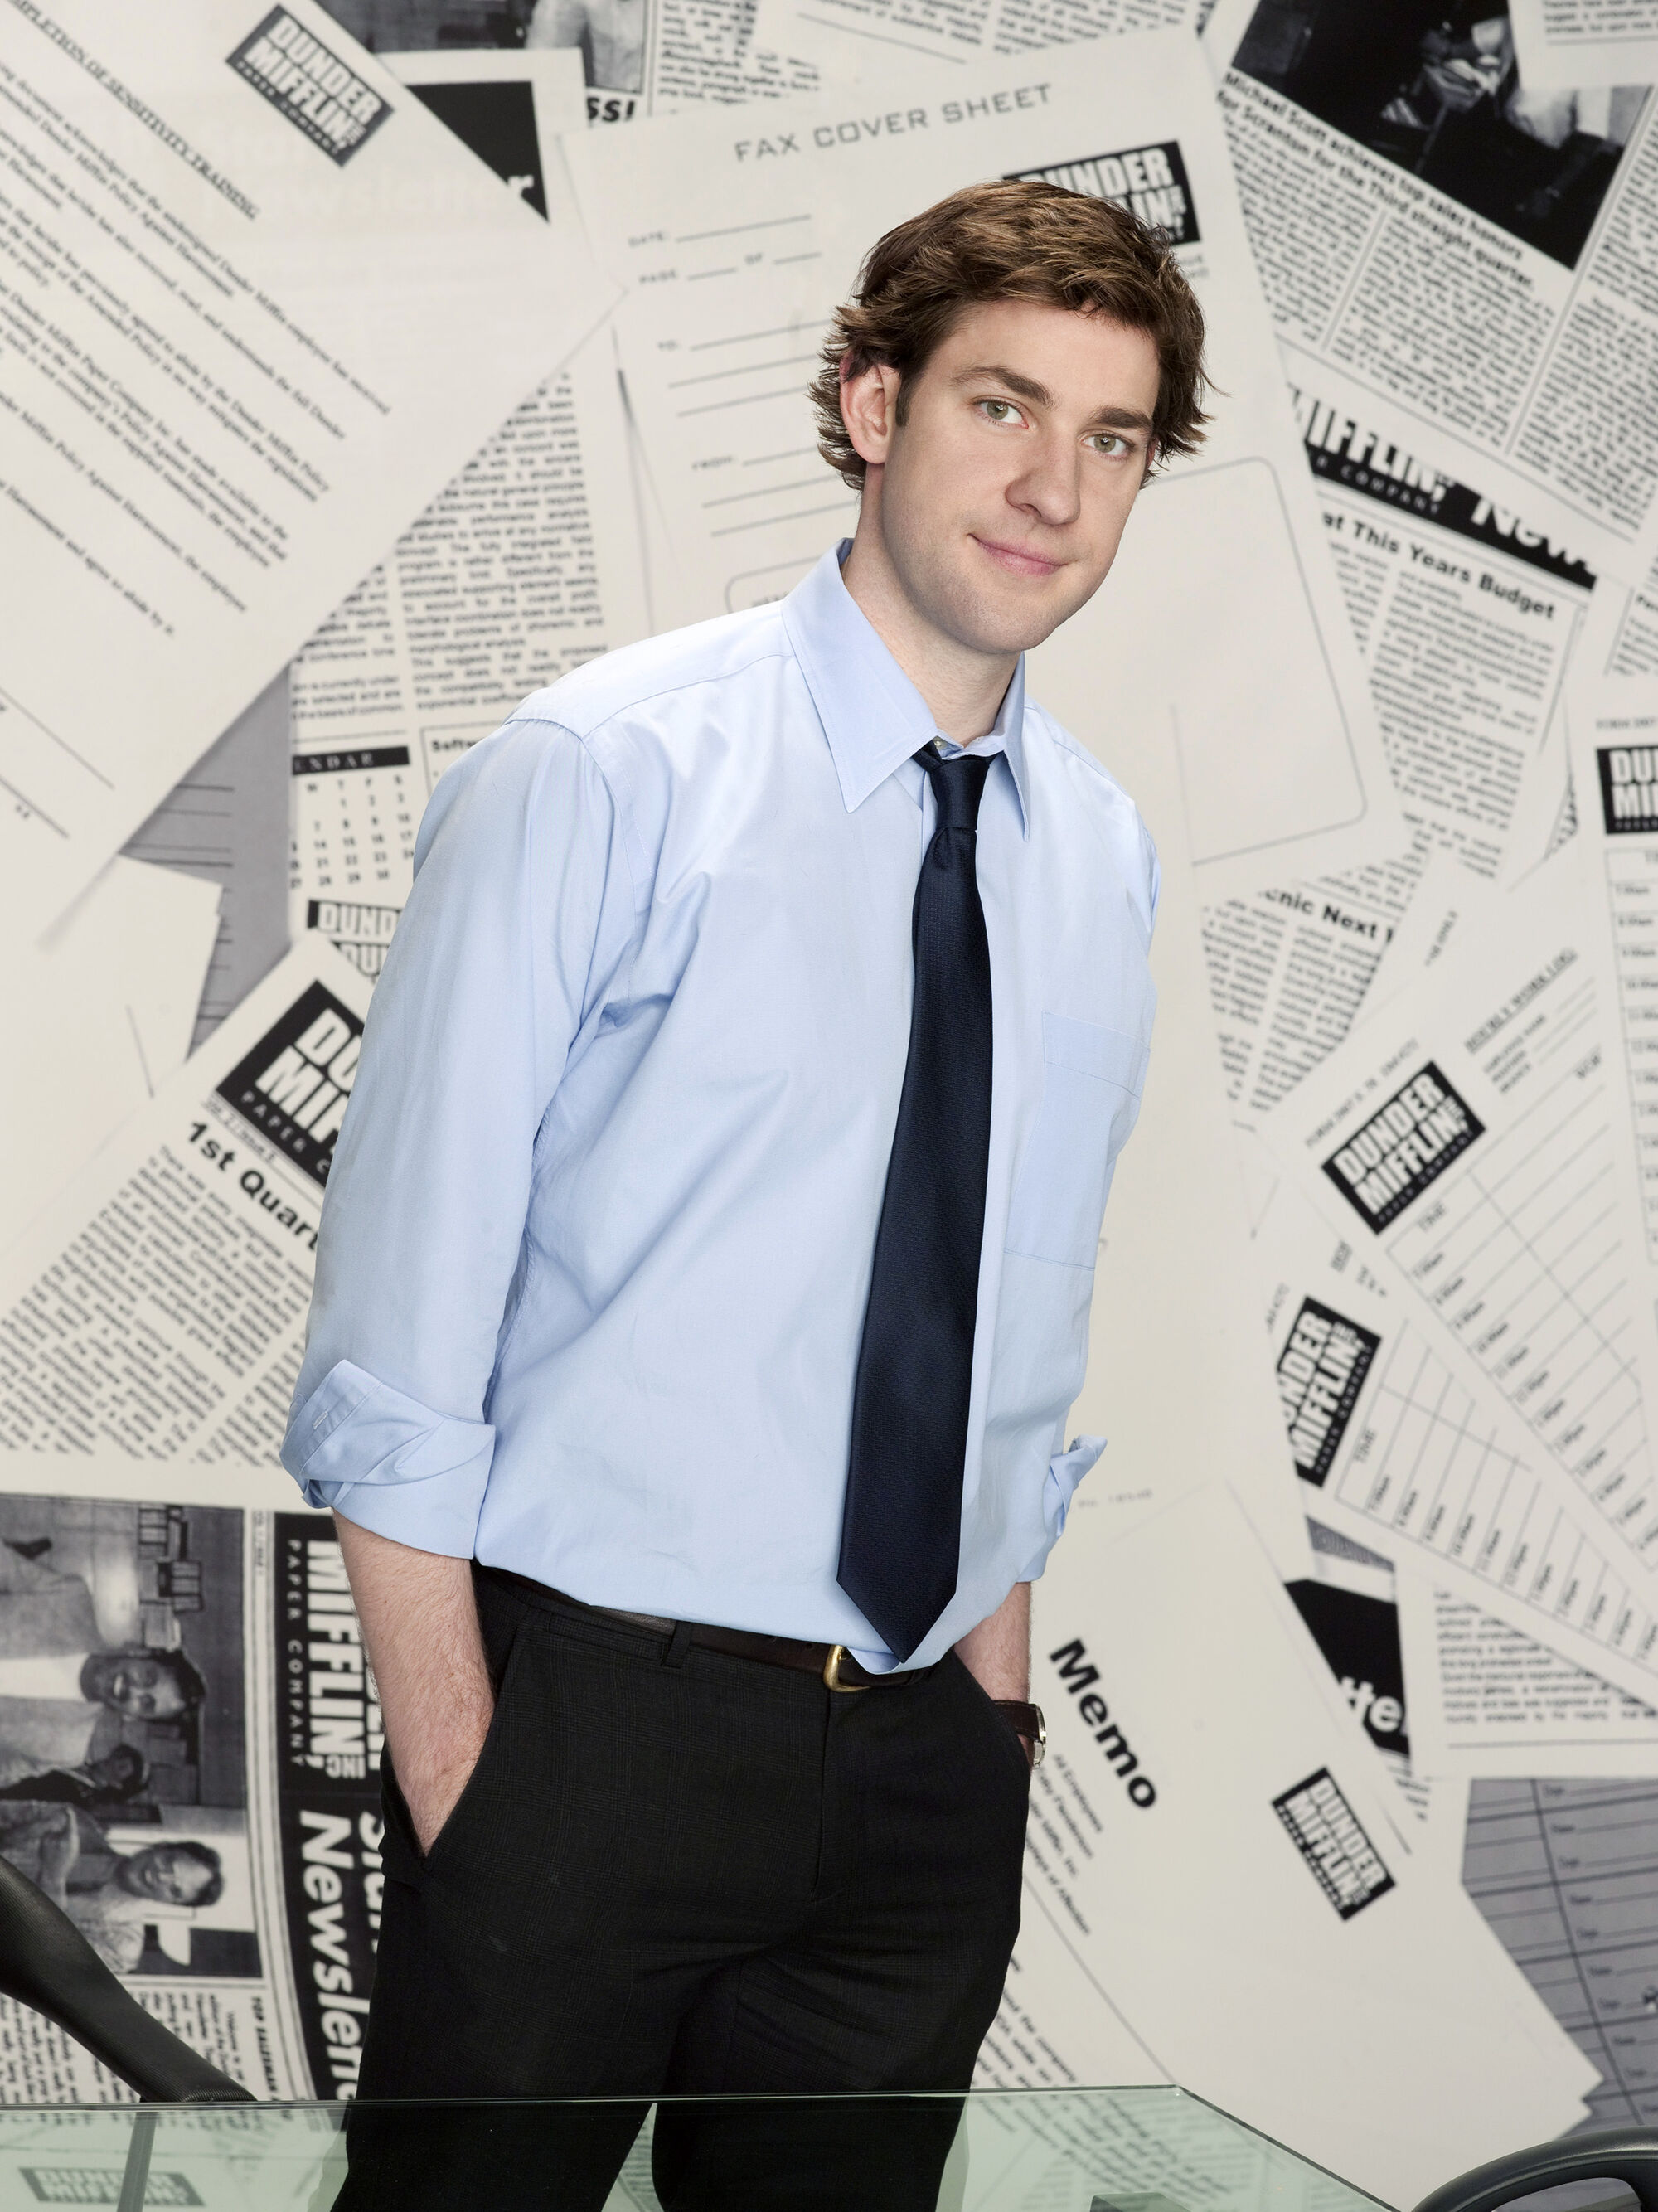 Jim Halpert | Dunderpedia: The Office Wiki | FANDOM ... - photo#40